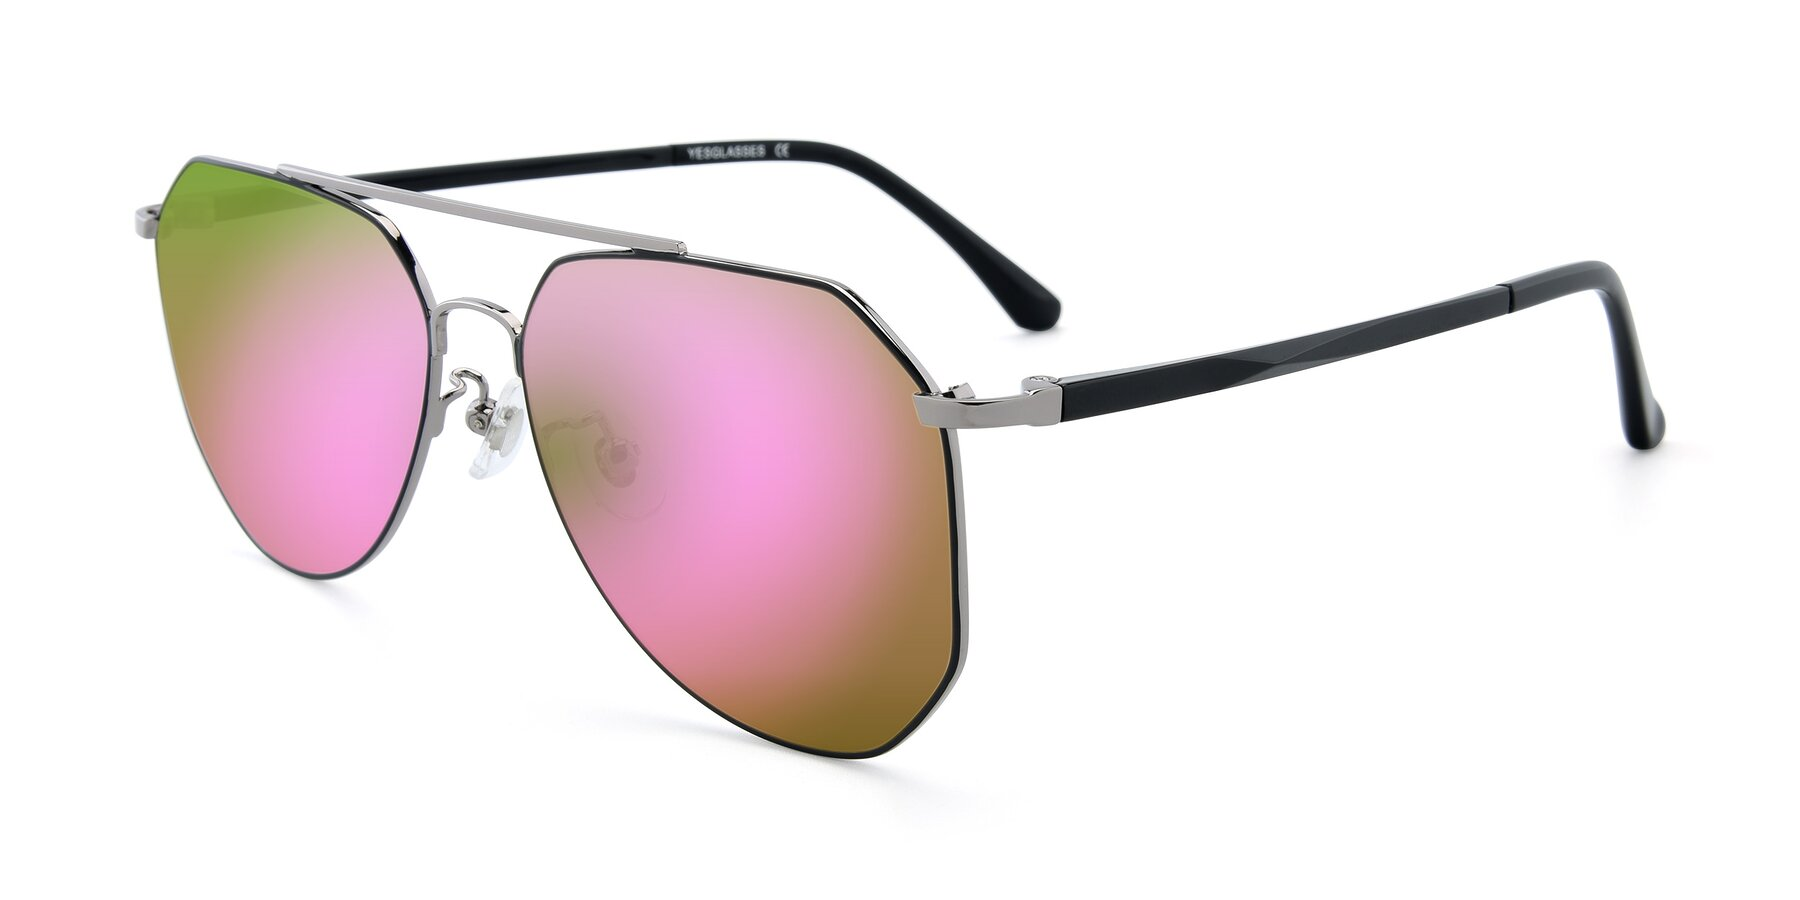 Angle of XC-8040 in Black/ Gun with Pink Mirrored Lenses